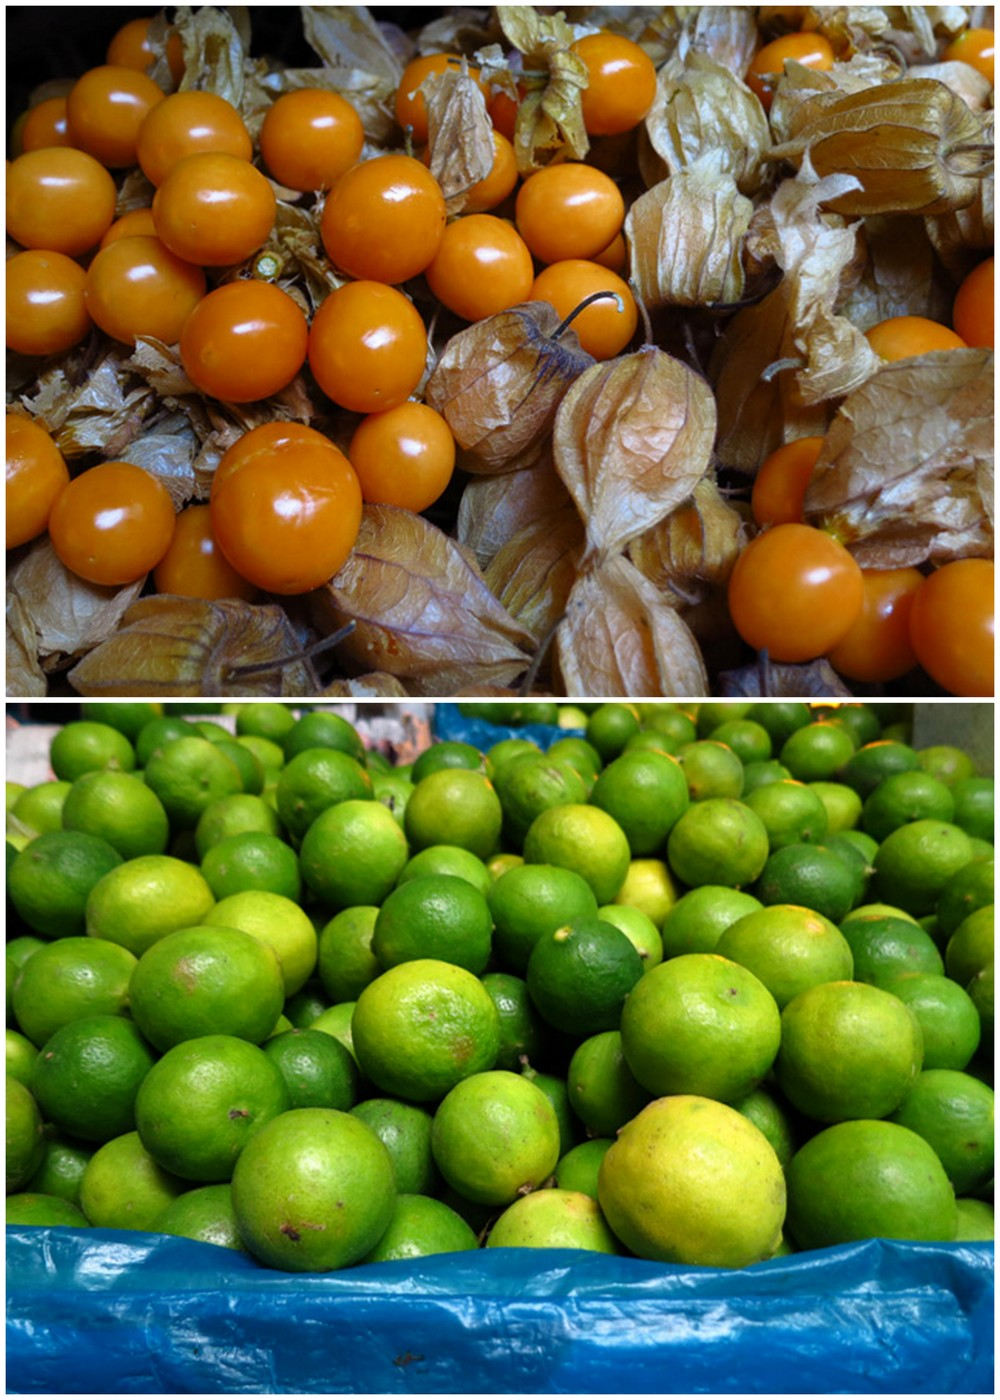 Peruvian ground cherries (aguaymanto) and limes, a staple to Peruvian cuisine